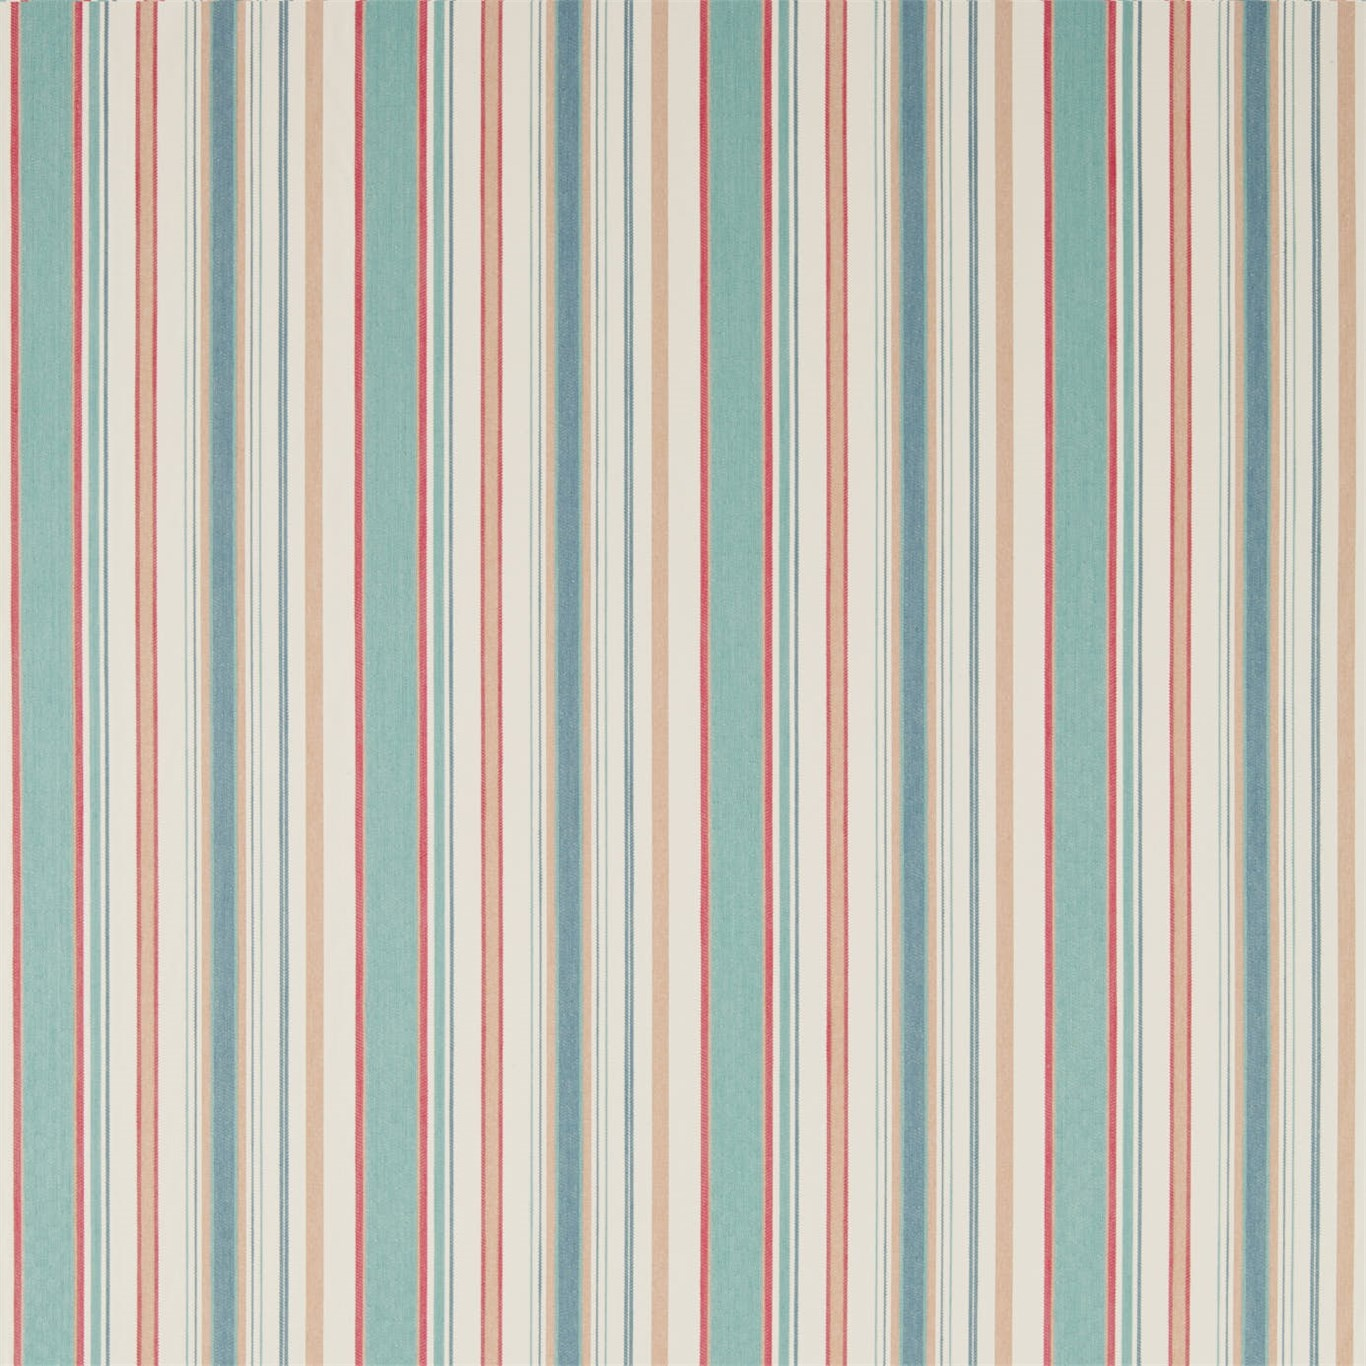 Image of Sanderson Home Dobby Stripe Brick Curtain Fabric 235896